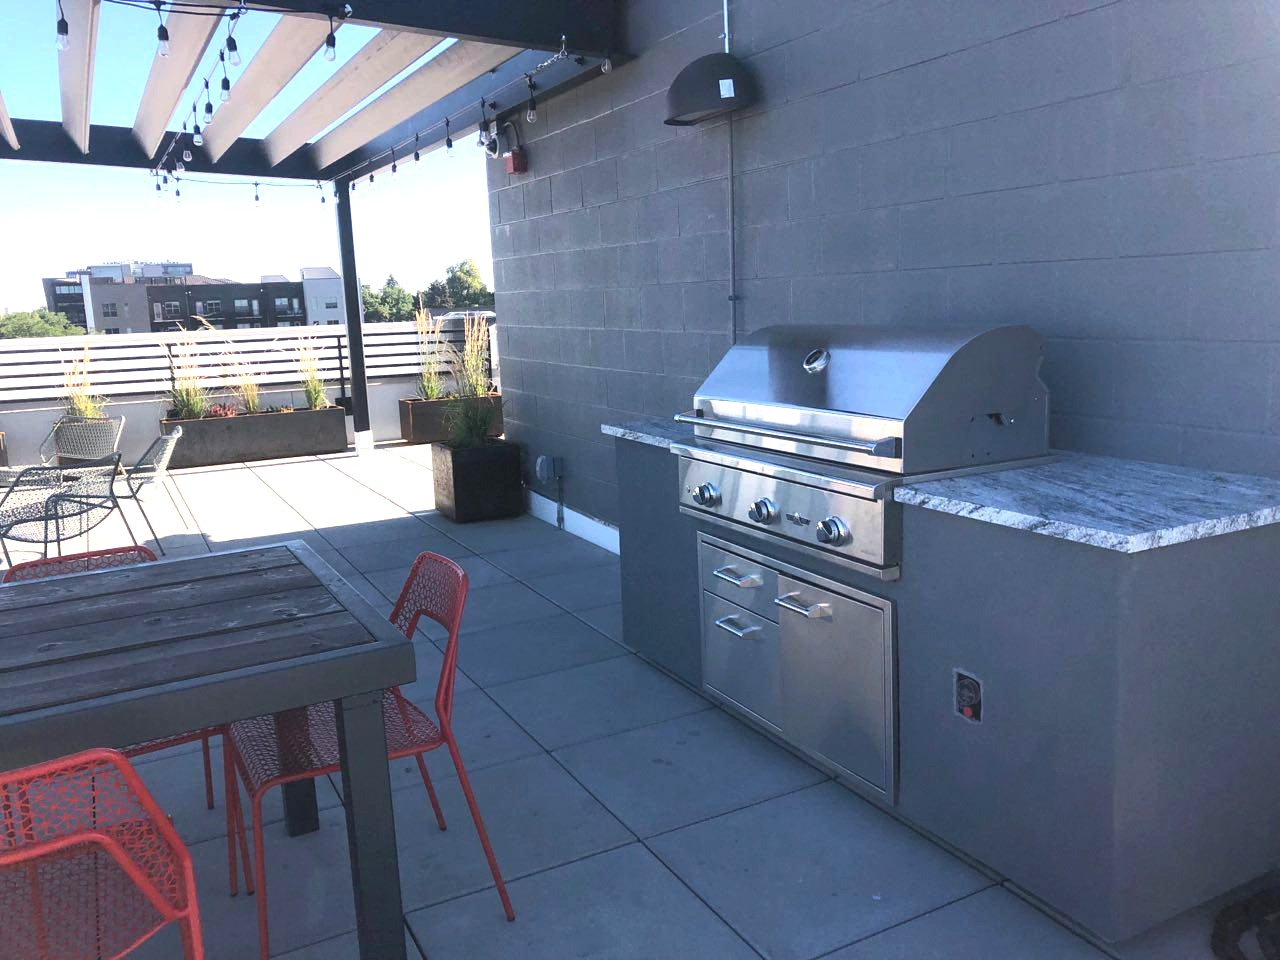 Community grill and fire pit at OB Flats Roof deck.